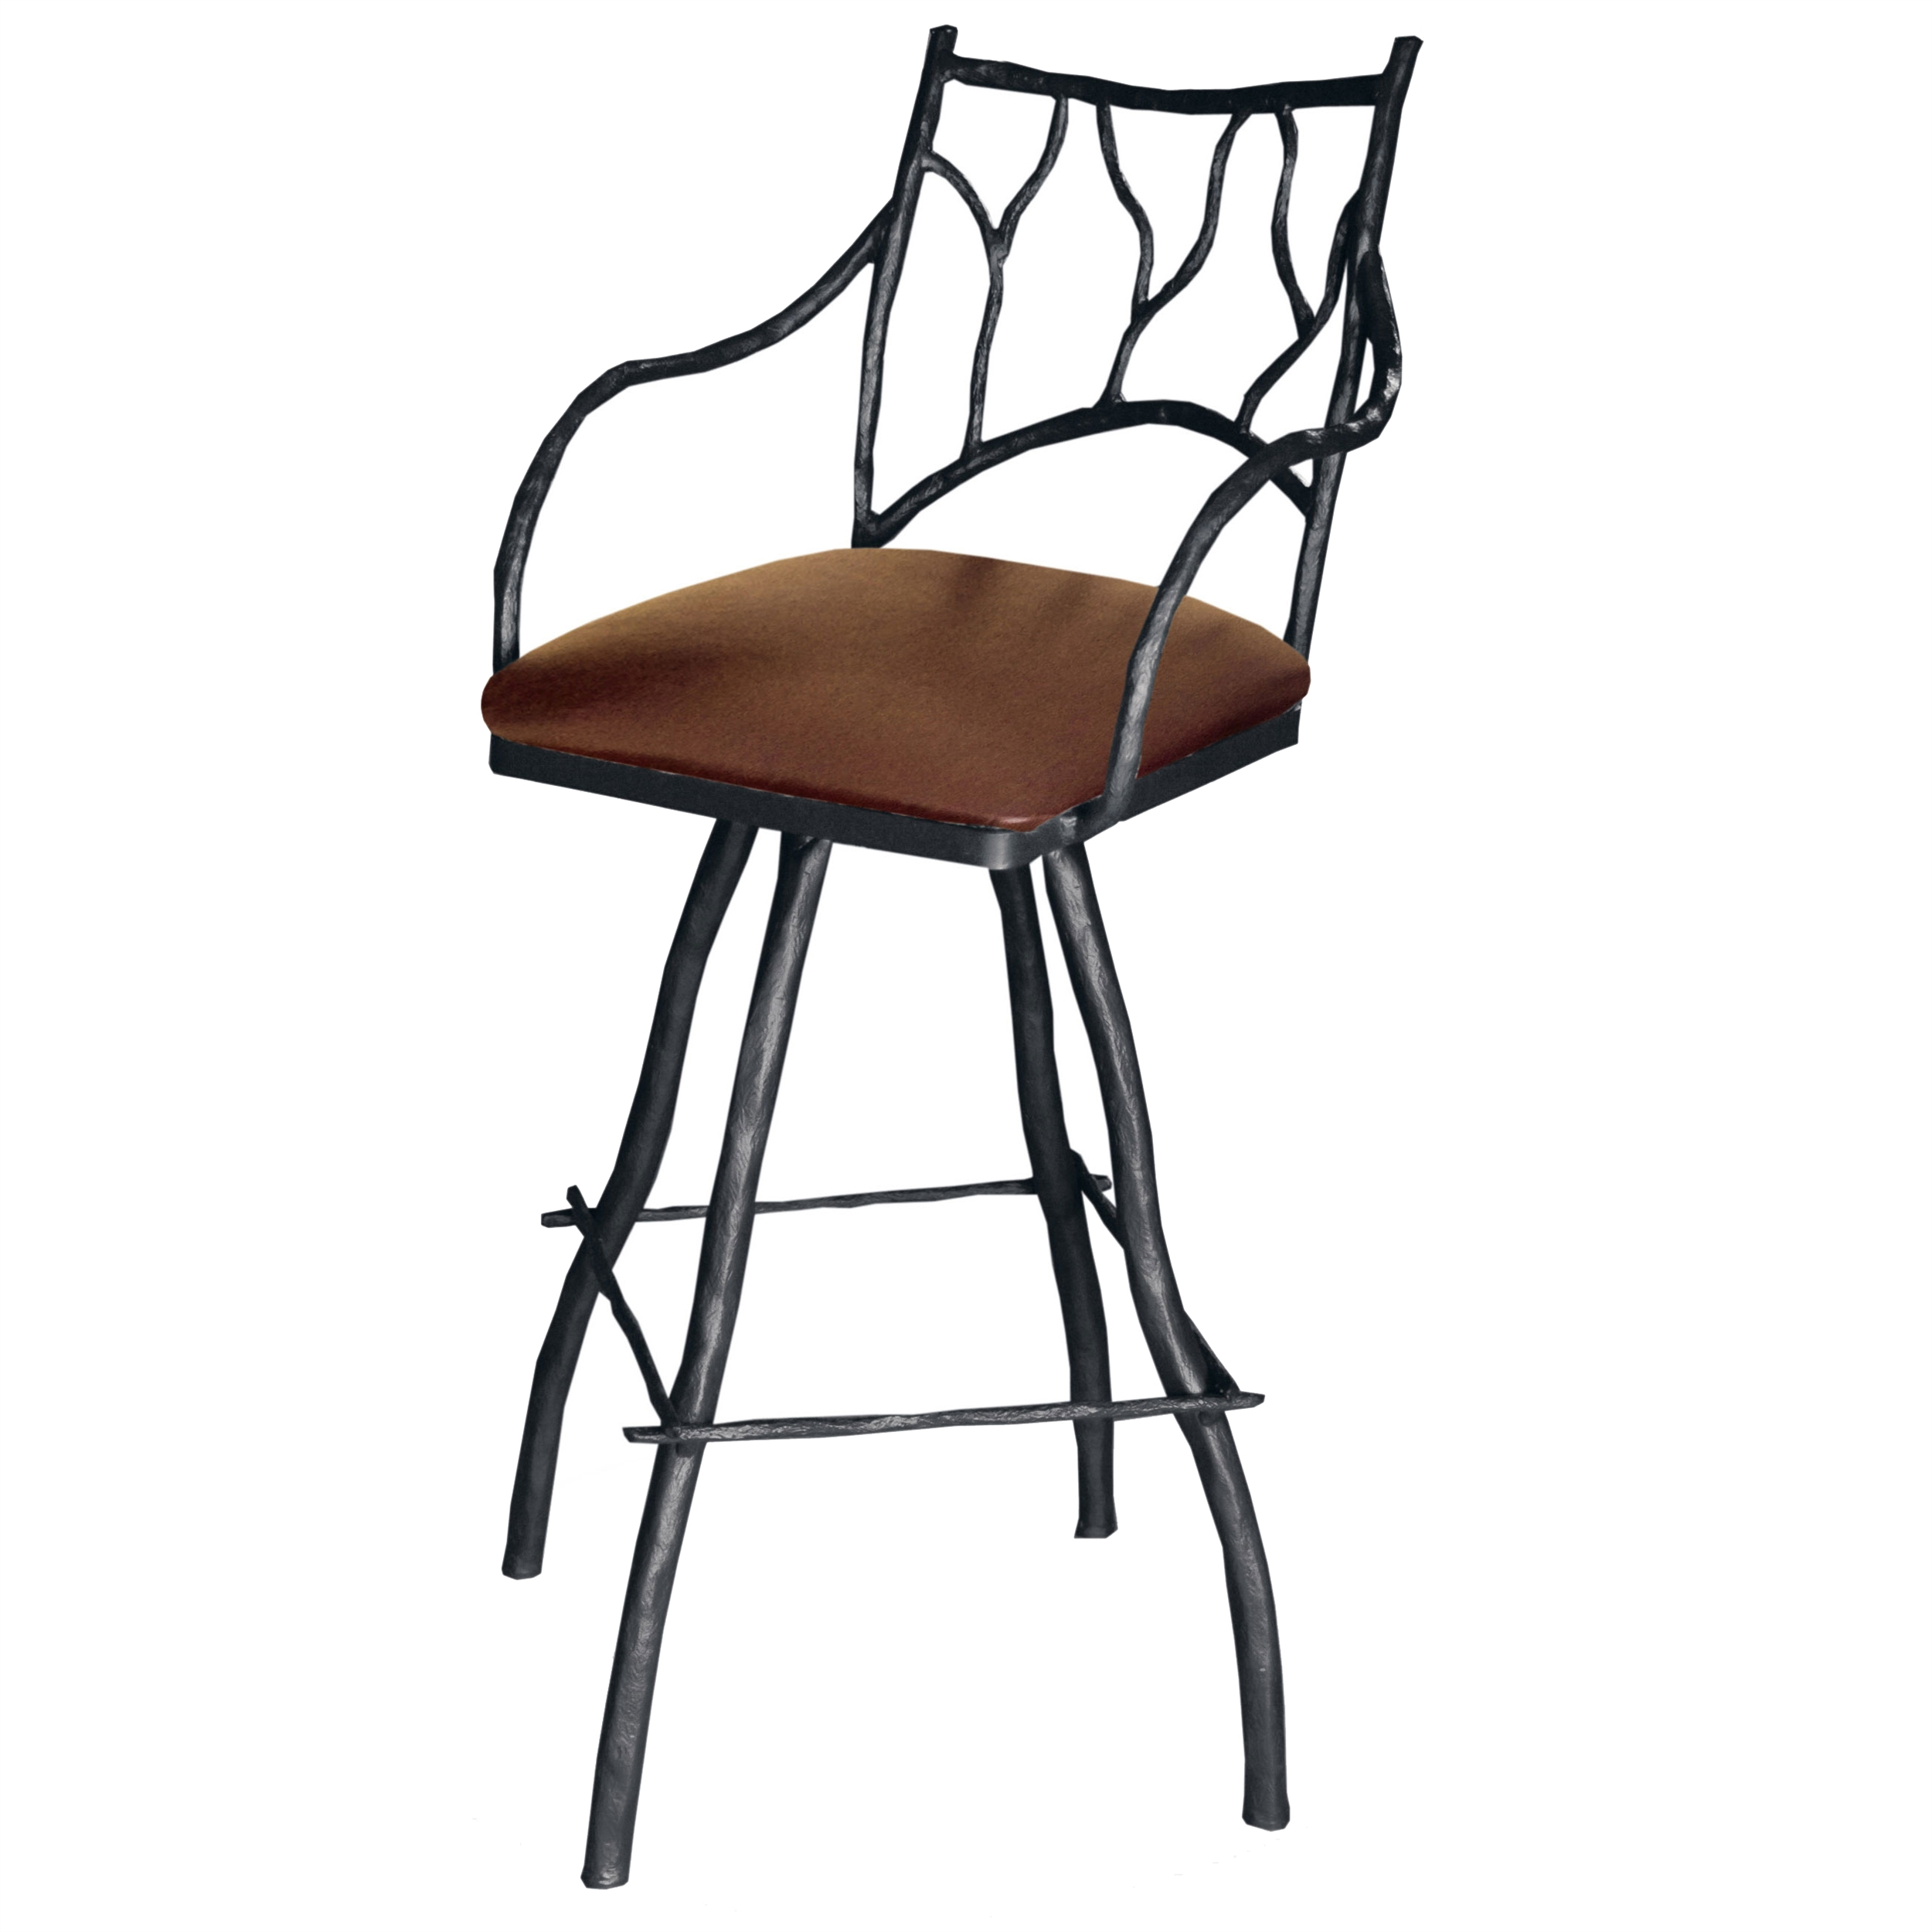 Large South Fork Branch Swivel Counter Stool Seat Height 25in